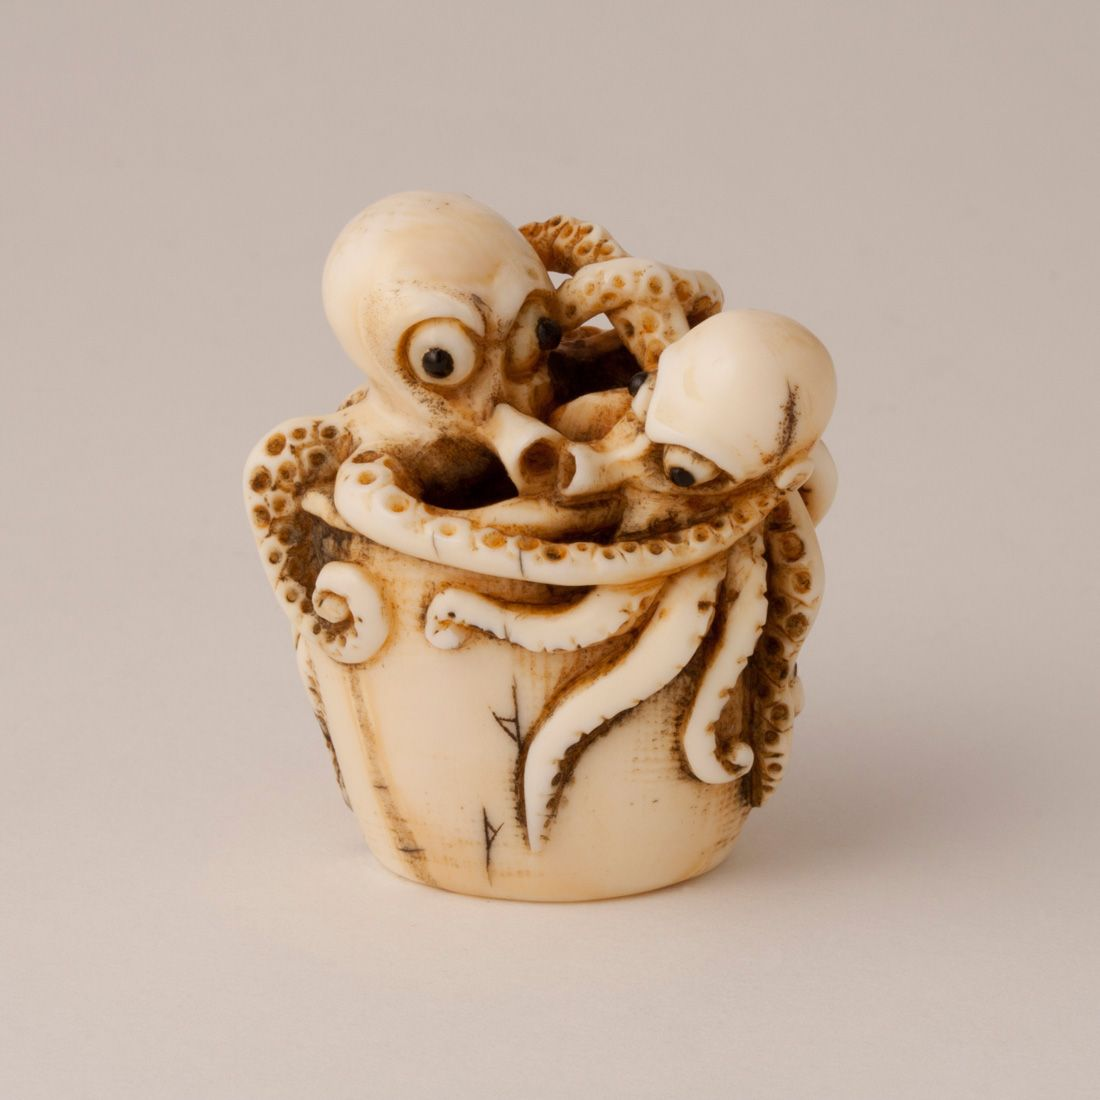 ivory netsuke of two octopi in a barnacle encrusted bucket, 19th century, by Ittokusai  根付